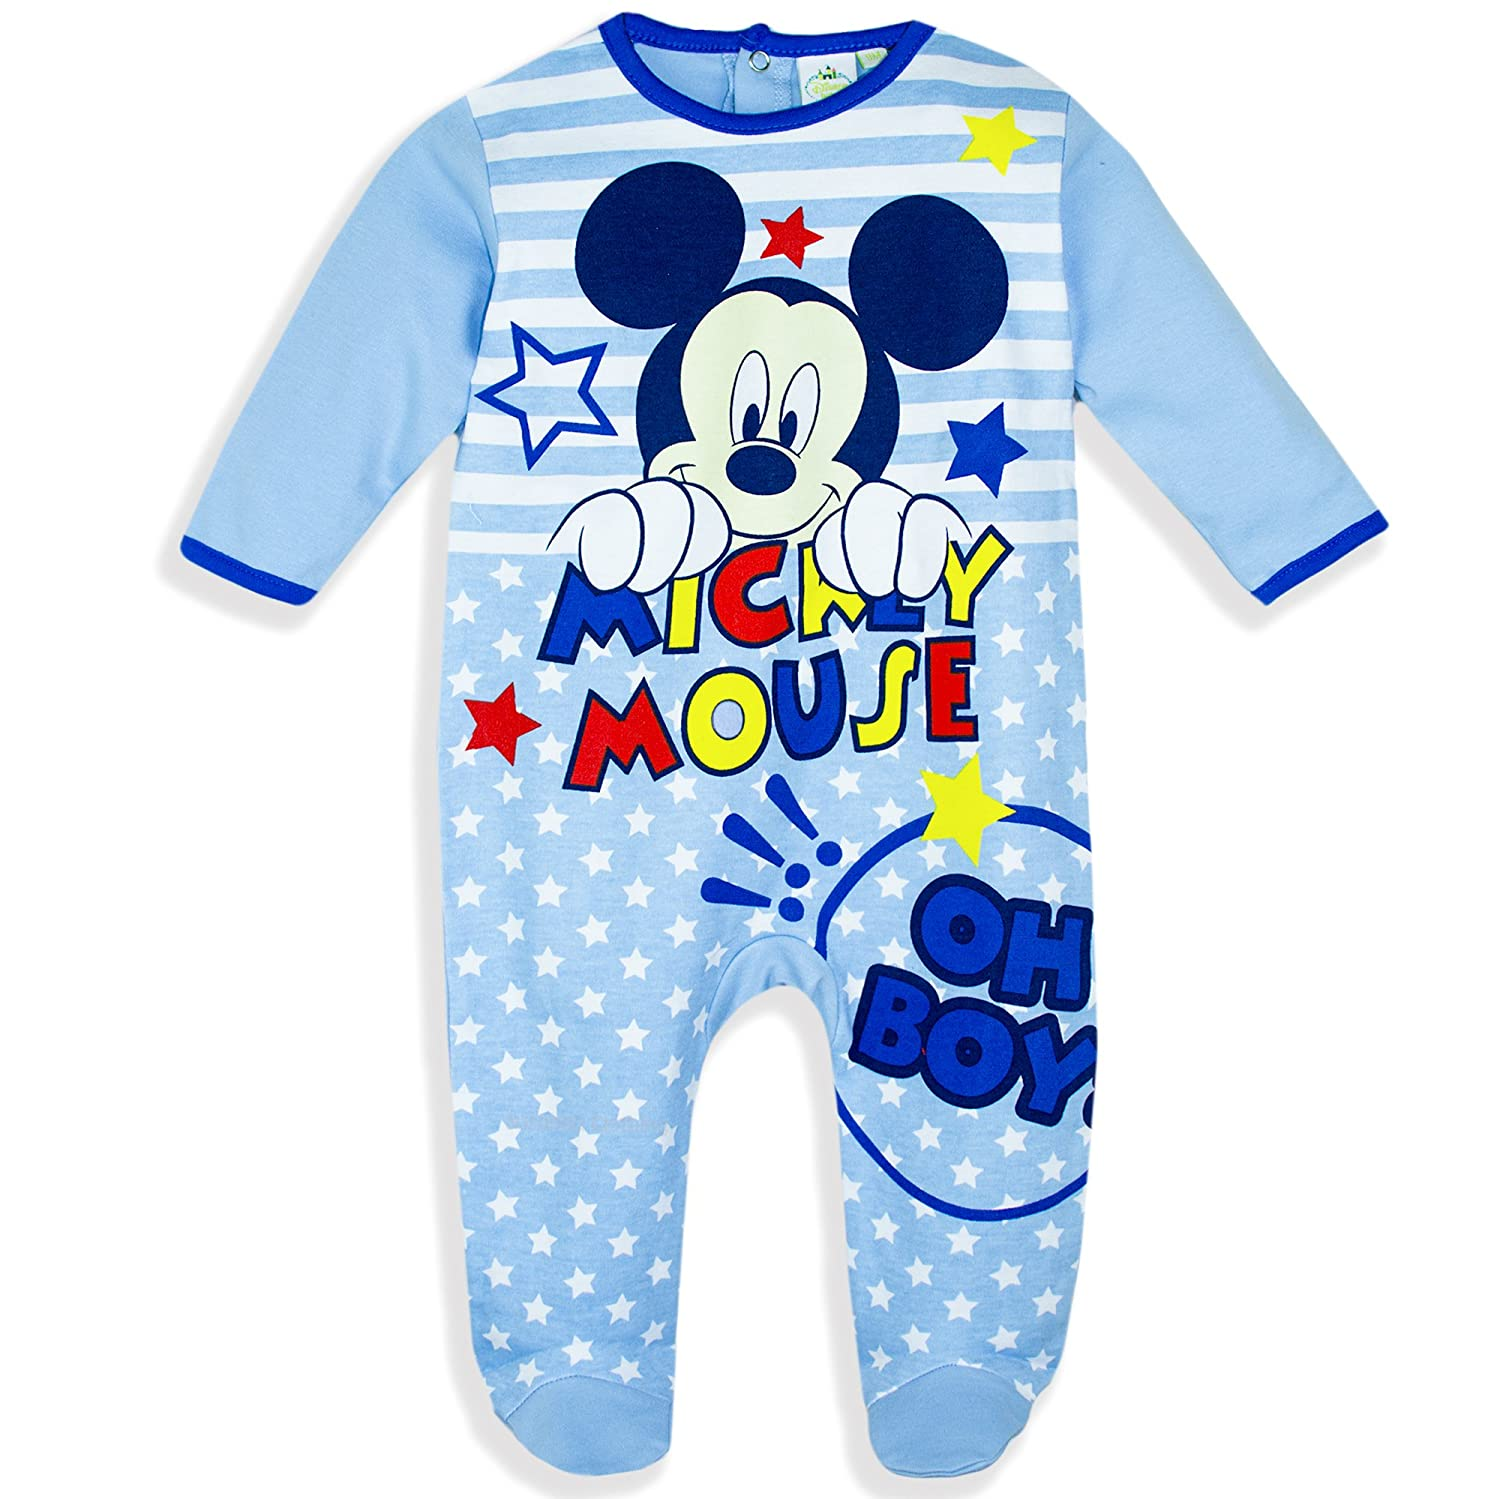 Mickey Mouse Disney Baby Babies Baby Boys Sleepsuit Pyjamas Onesie Gift Box 100% Cotton 0-24 Months - New 2017/18